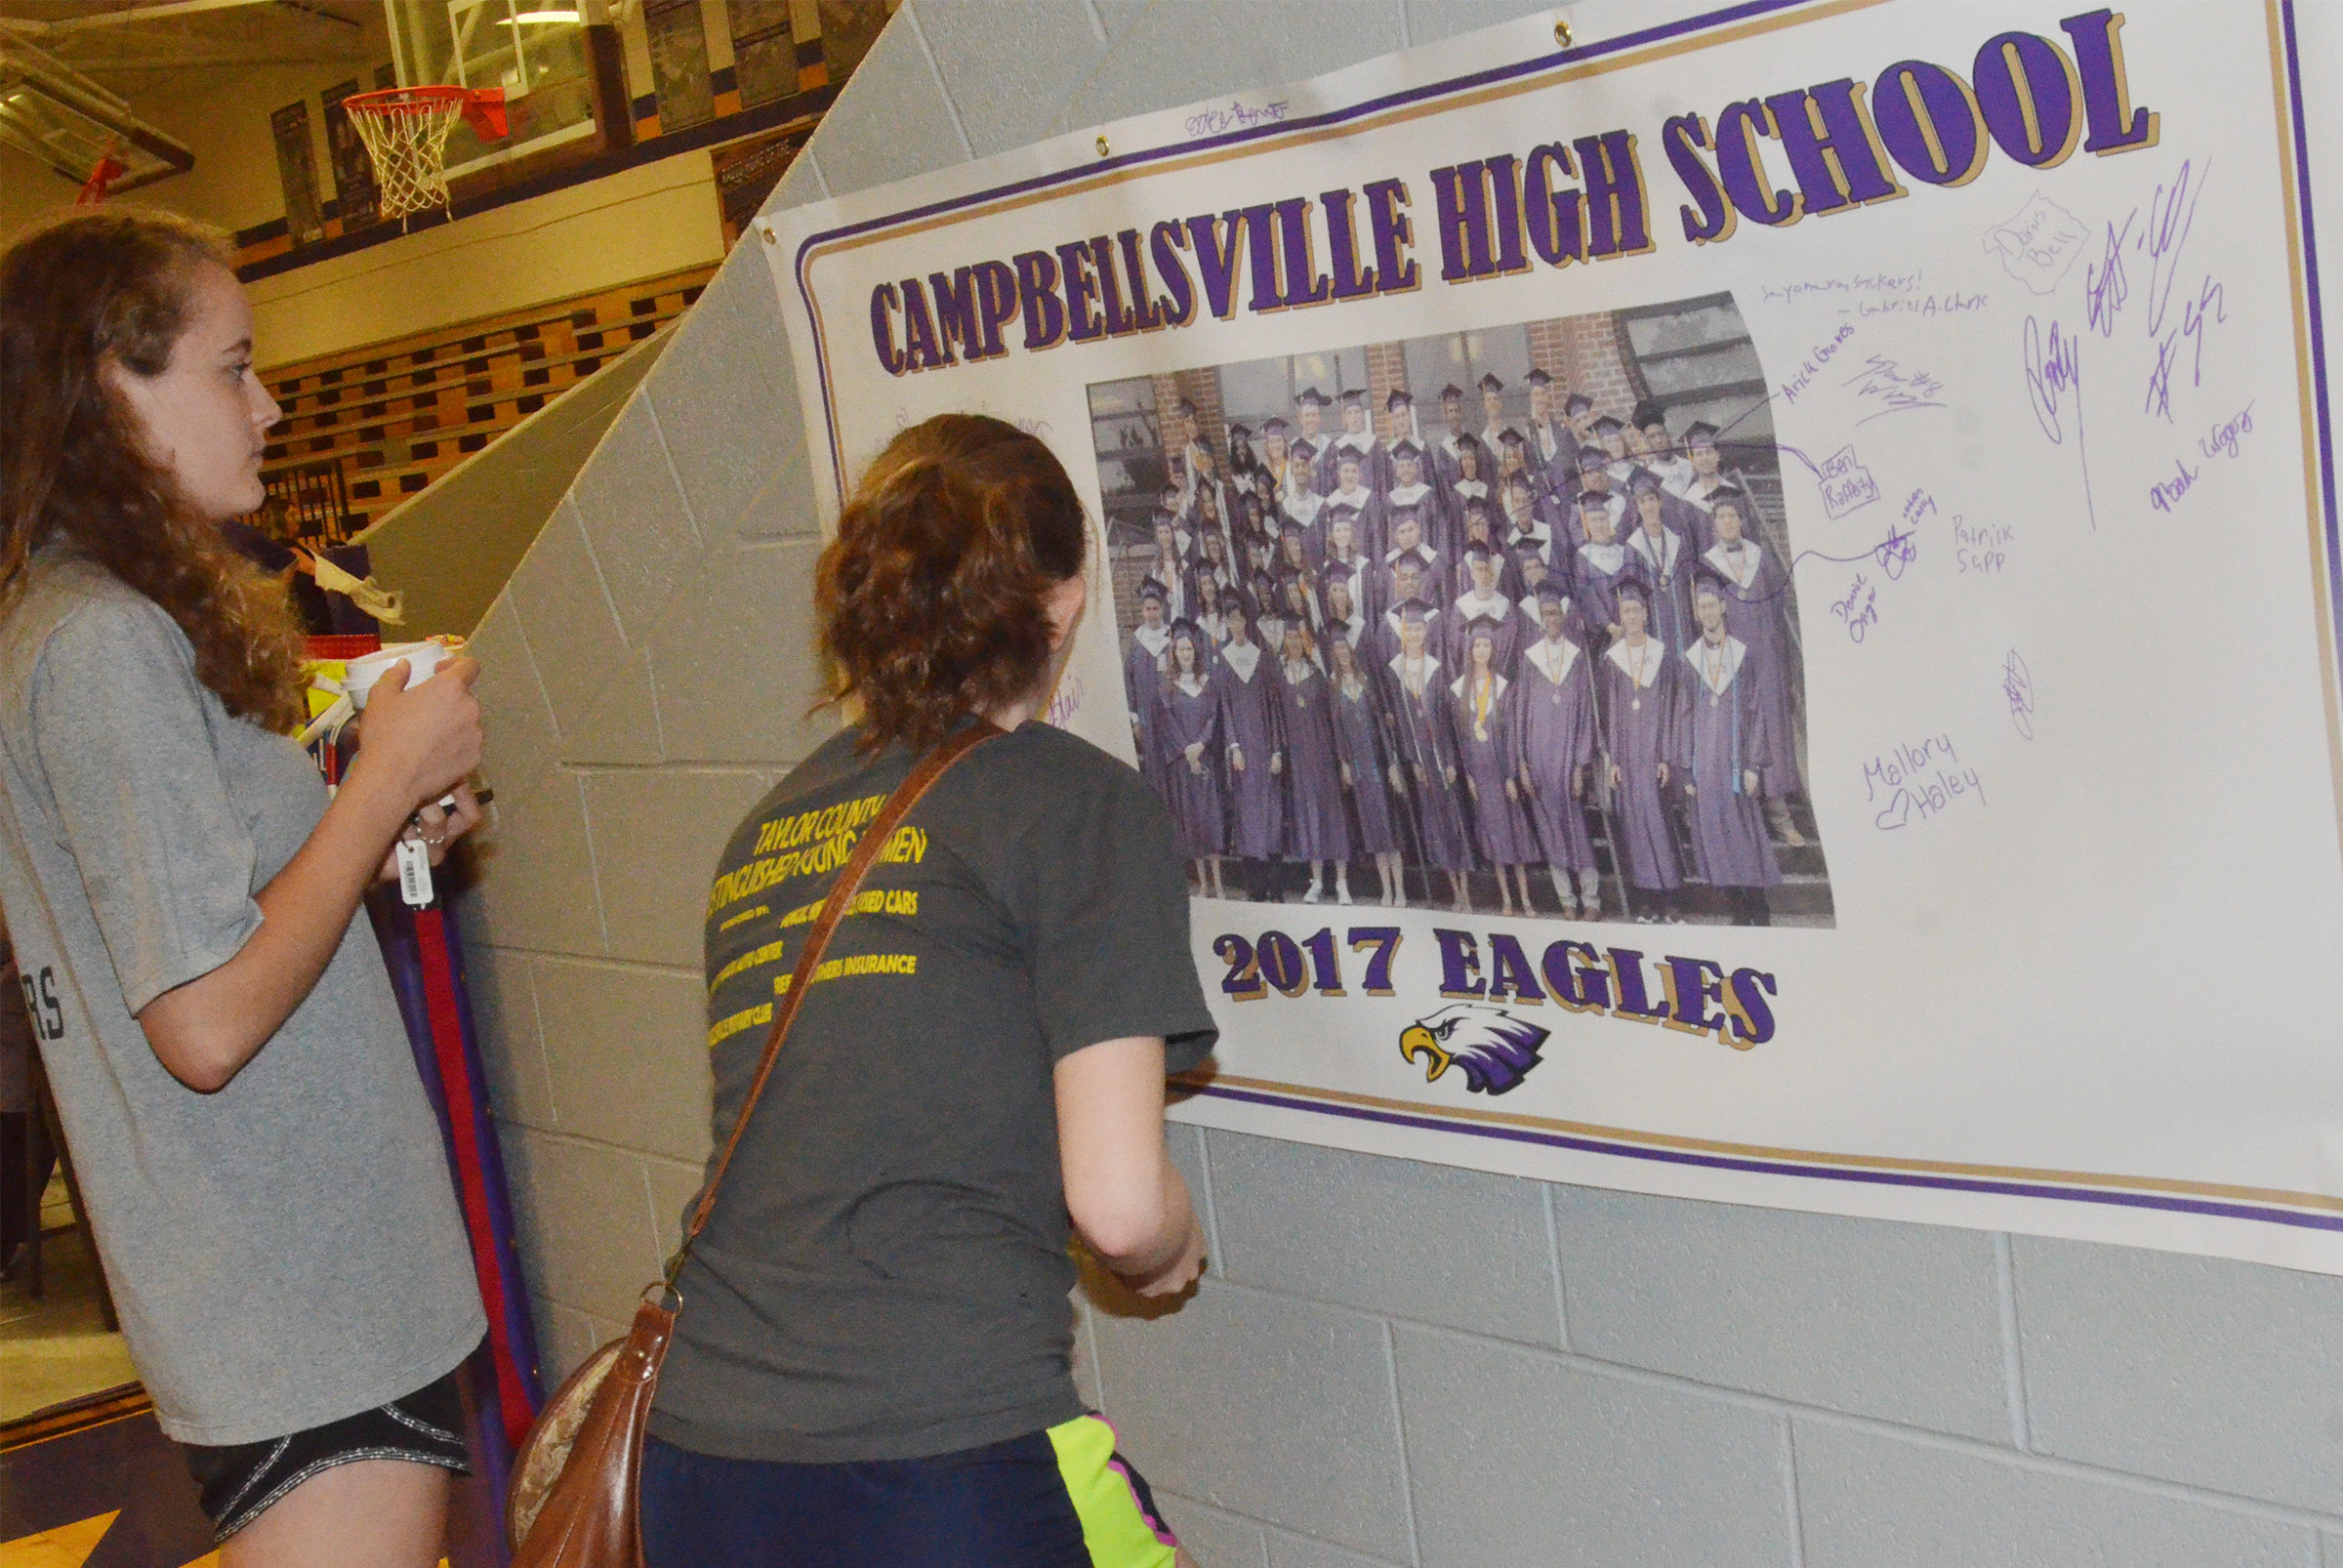 CHS seniors Caroline McMahan, at left, and Blair Lamb sign a banner featuring a photo of their graduating class.